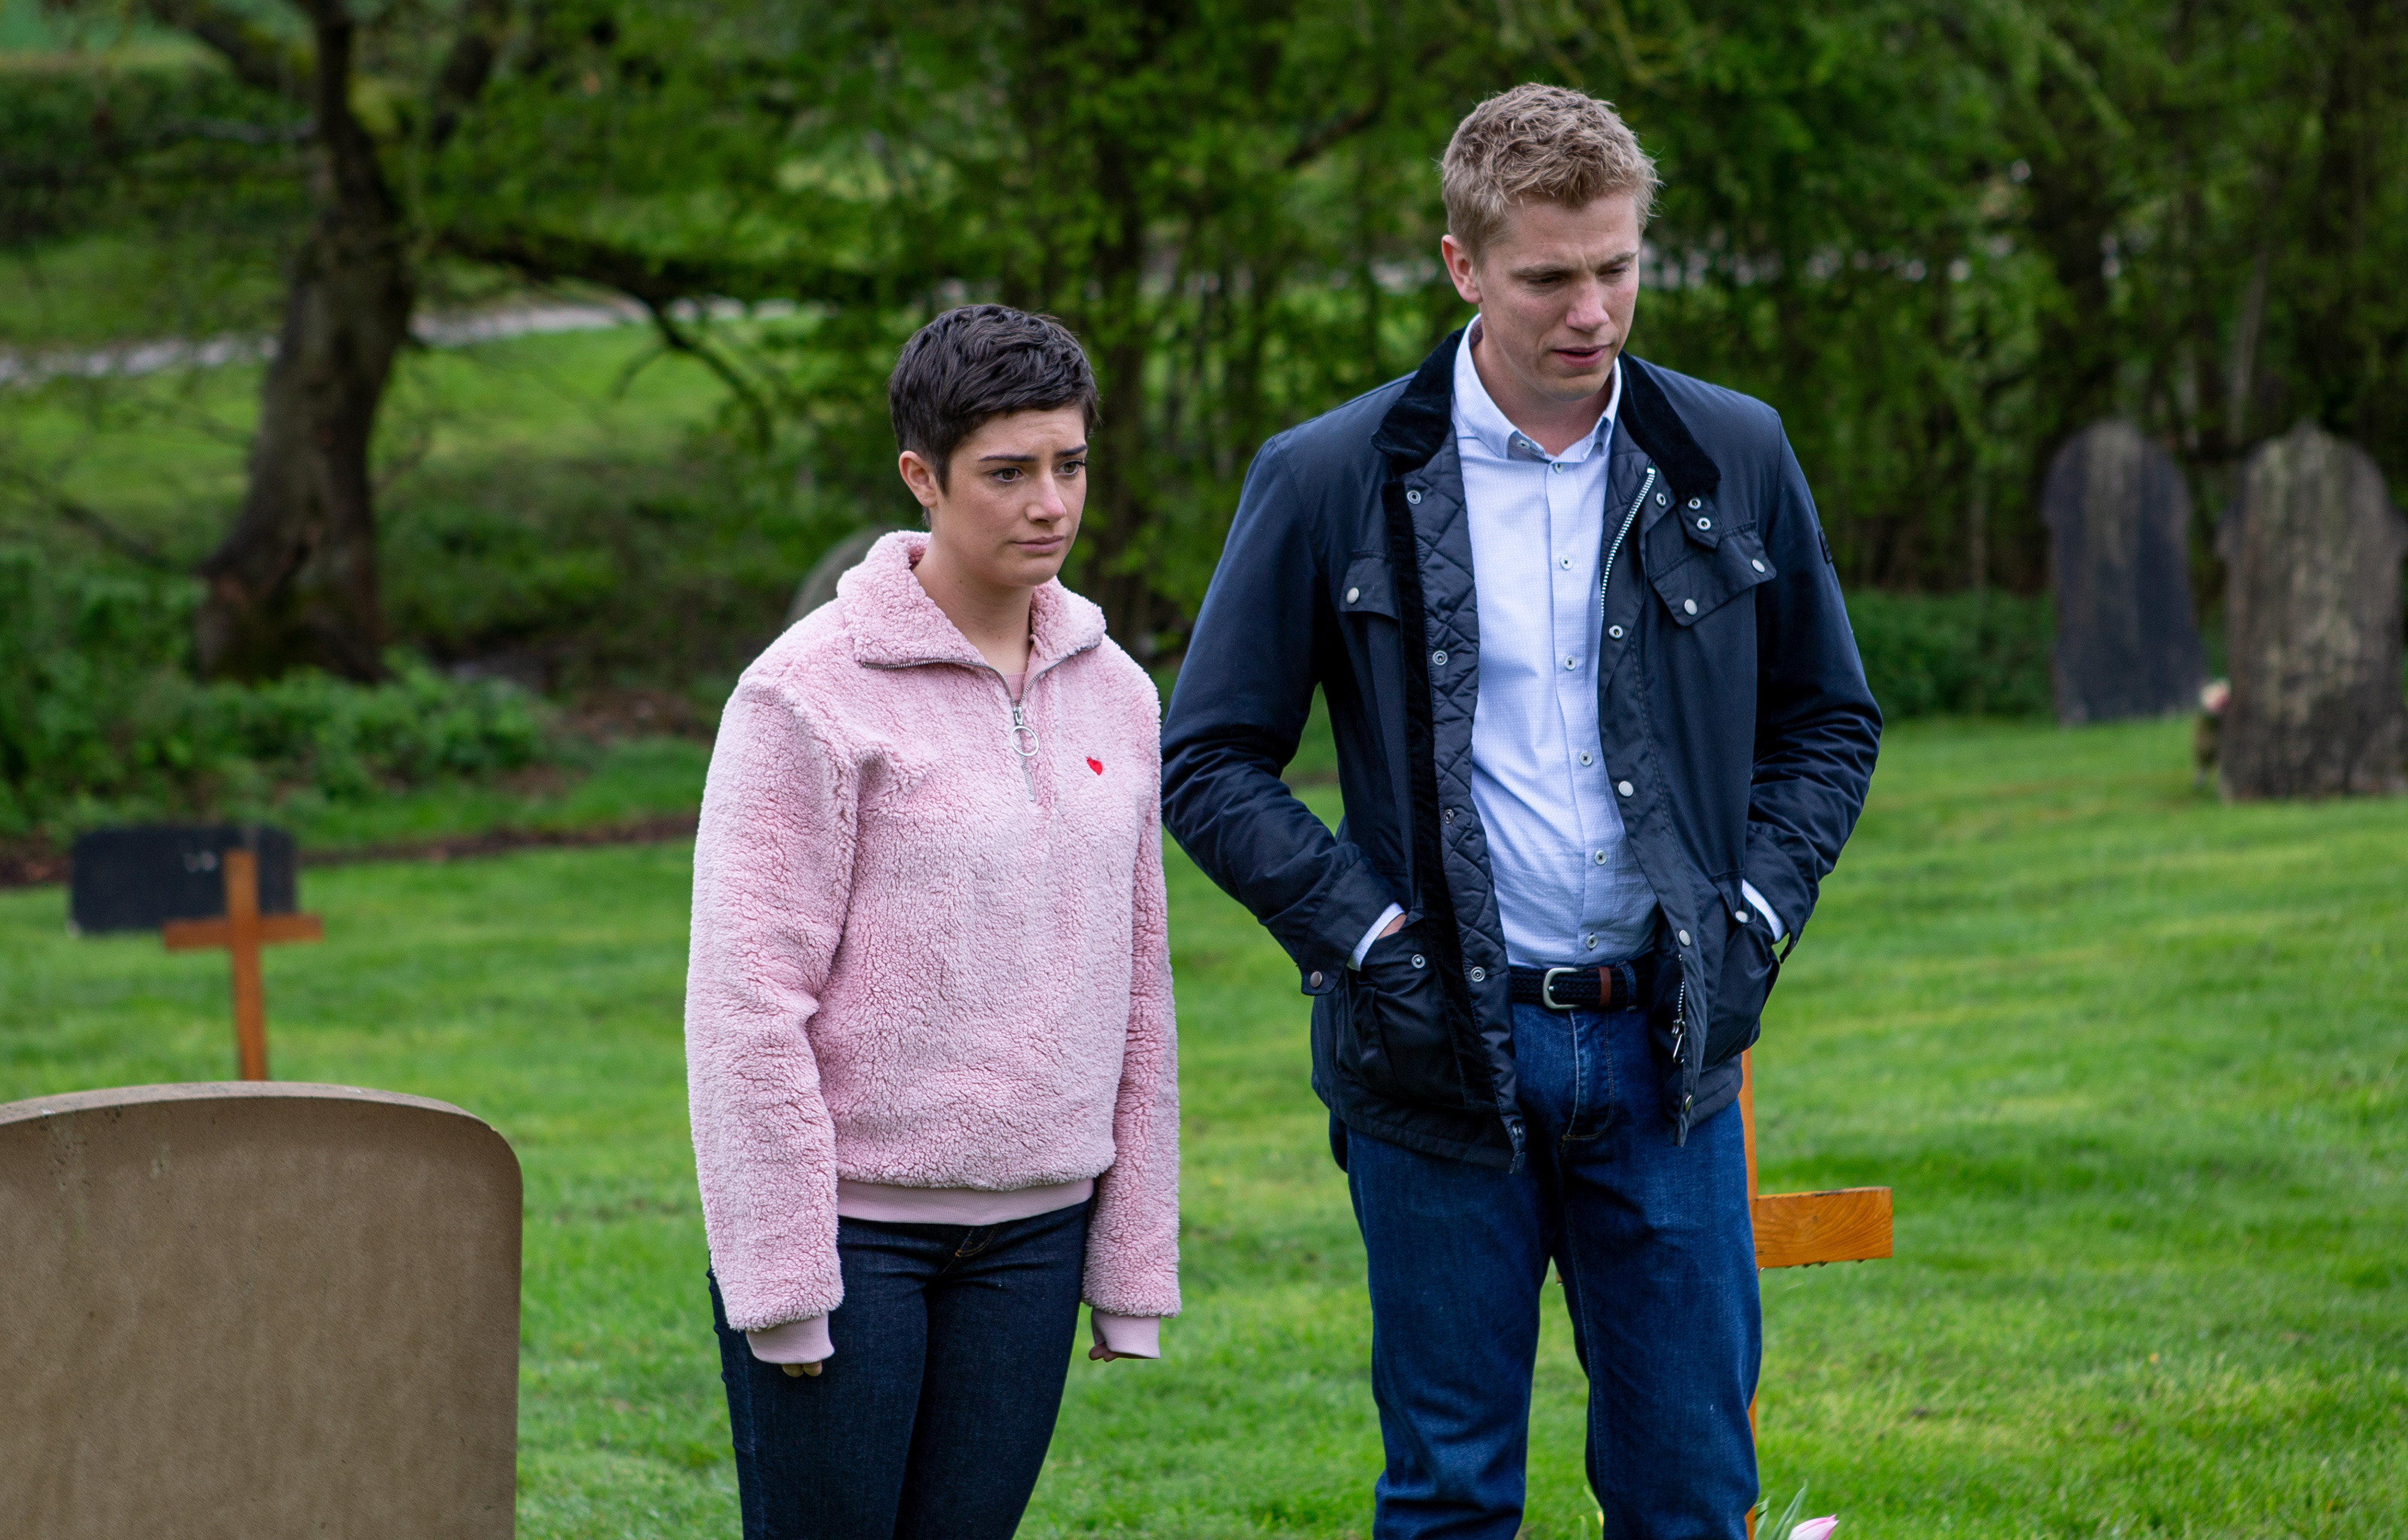 18_06_emm_victoria_robert_2nd_ep_01hddhdhdhgdhg-116e 10 Emmerdale spoilers: Maya shock exit, child death danger and Pete cheats with Kim?